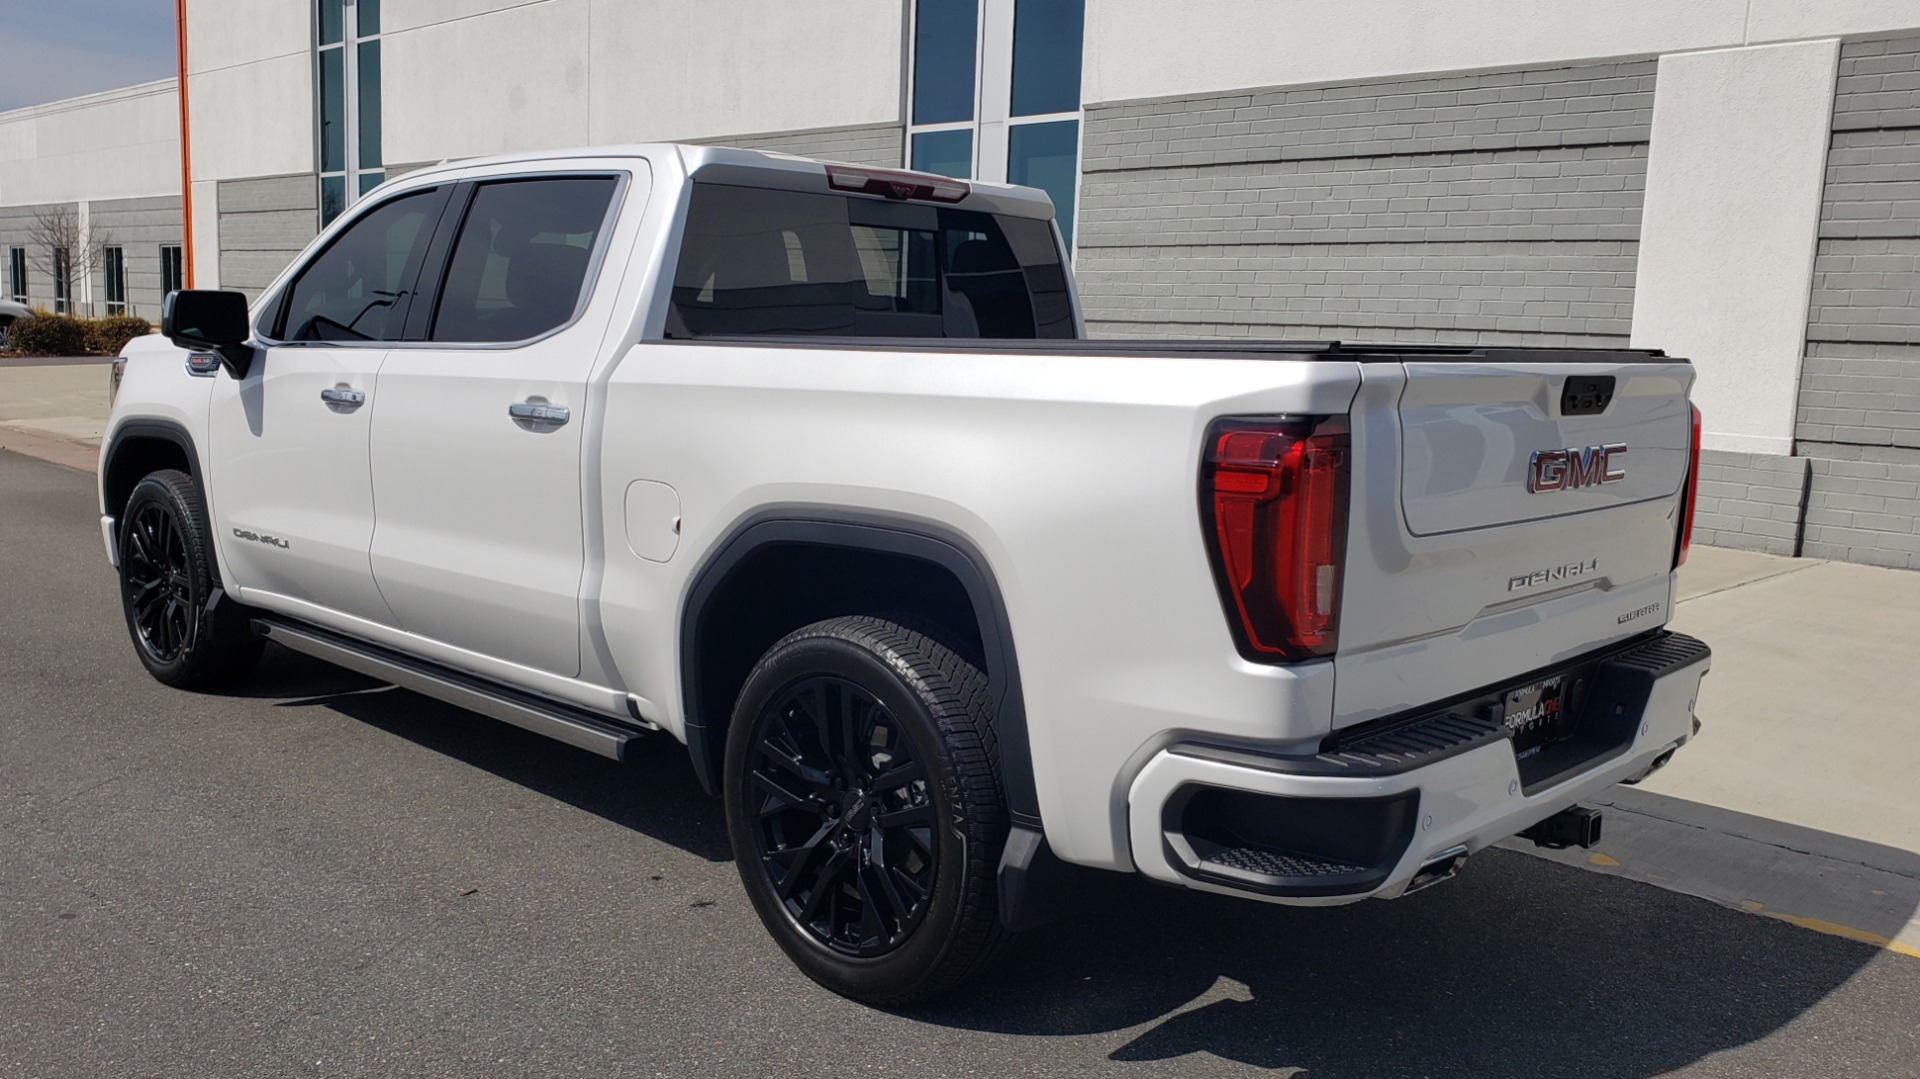 Used 2020 GMC SIERRA 1500 DENALI 4X4 CREWCAB 6.2L V8 / TECH / NAV / SUNROOF / DRVR ALERT II for sale Sold at Formula Imports in Charlotte NC 28227 5